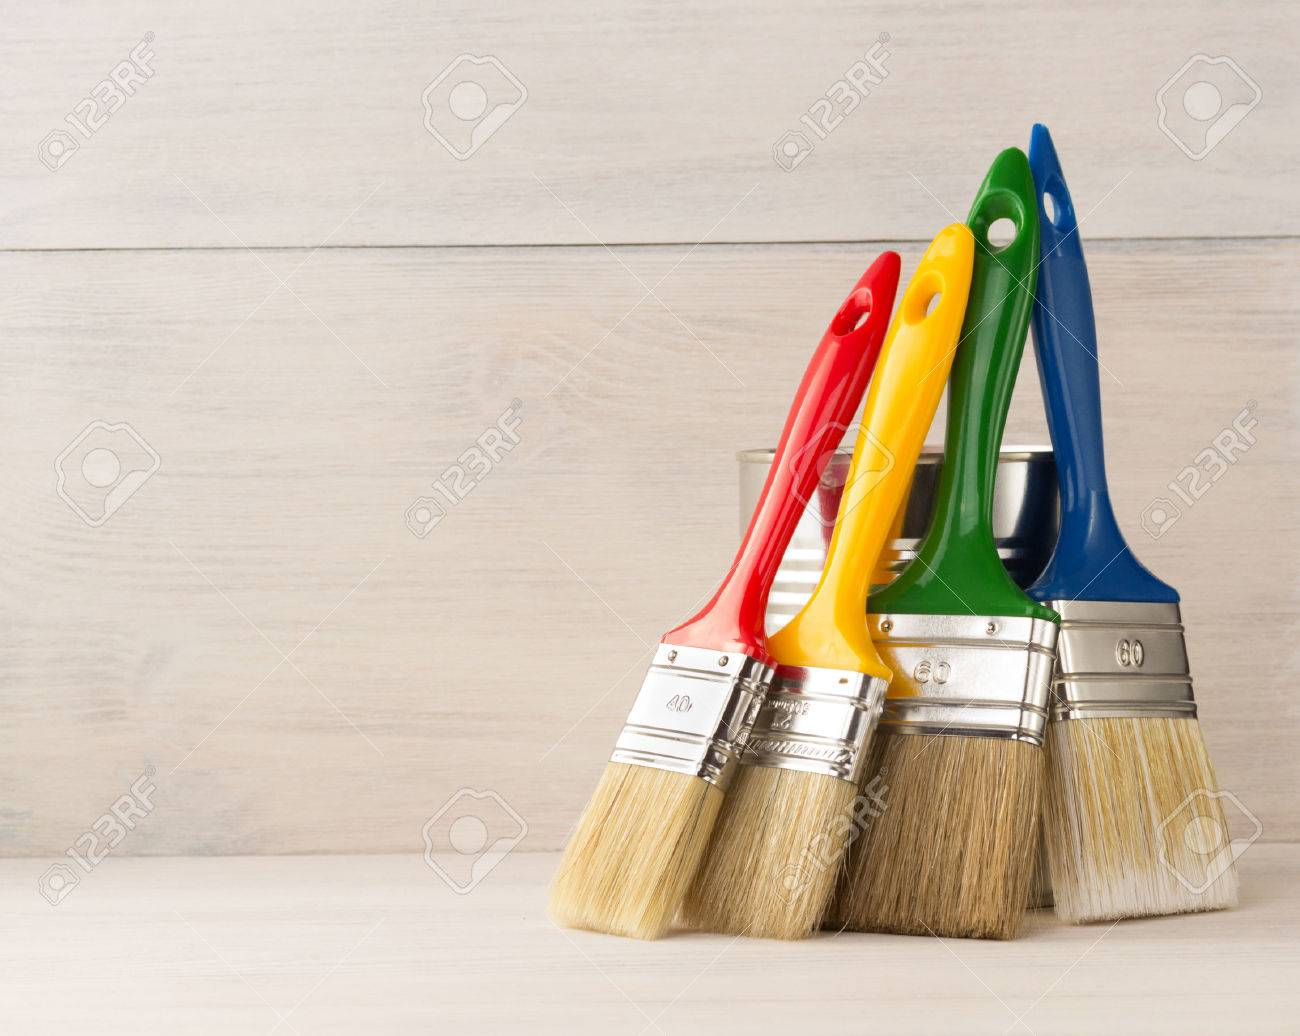 paint brush on wooden background - 39564904